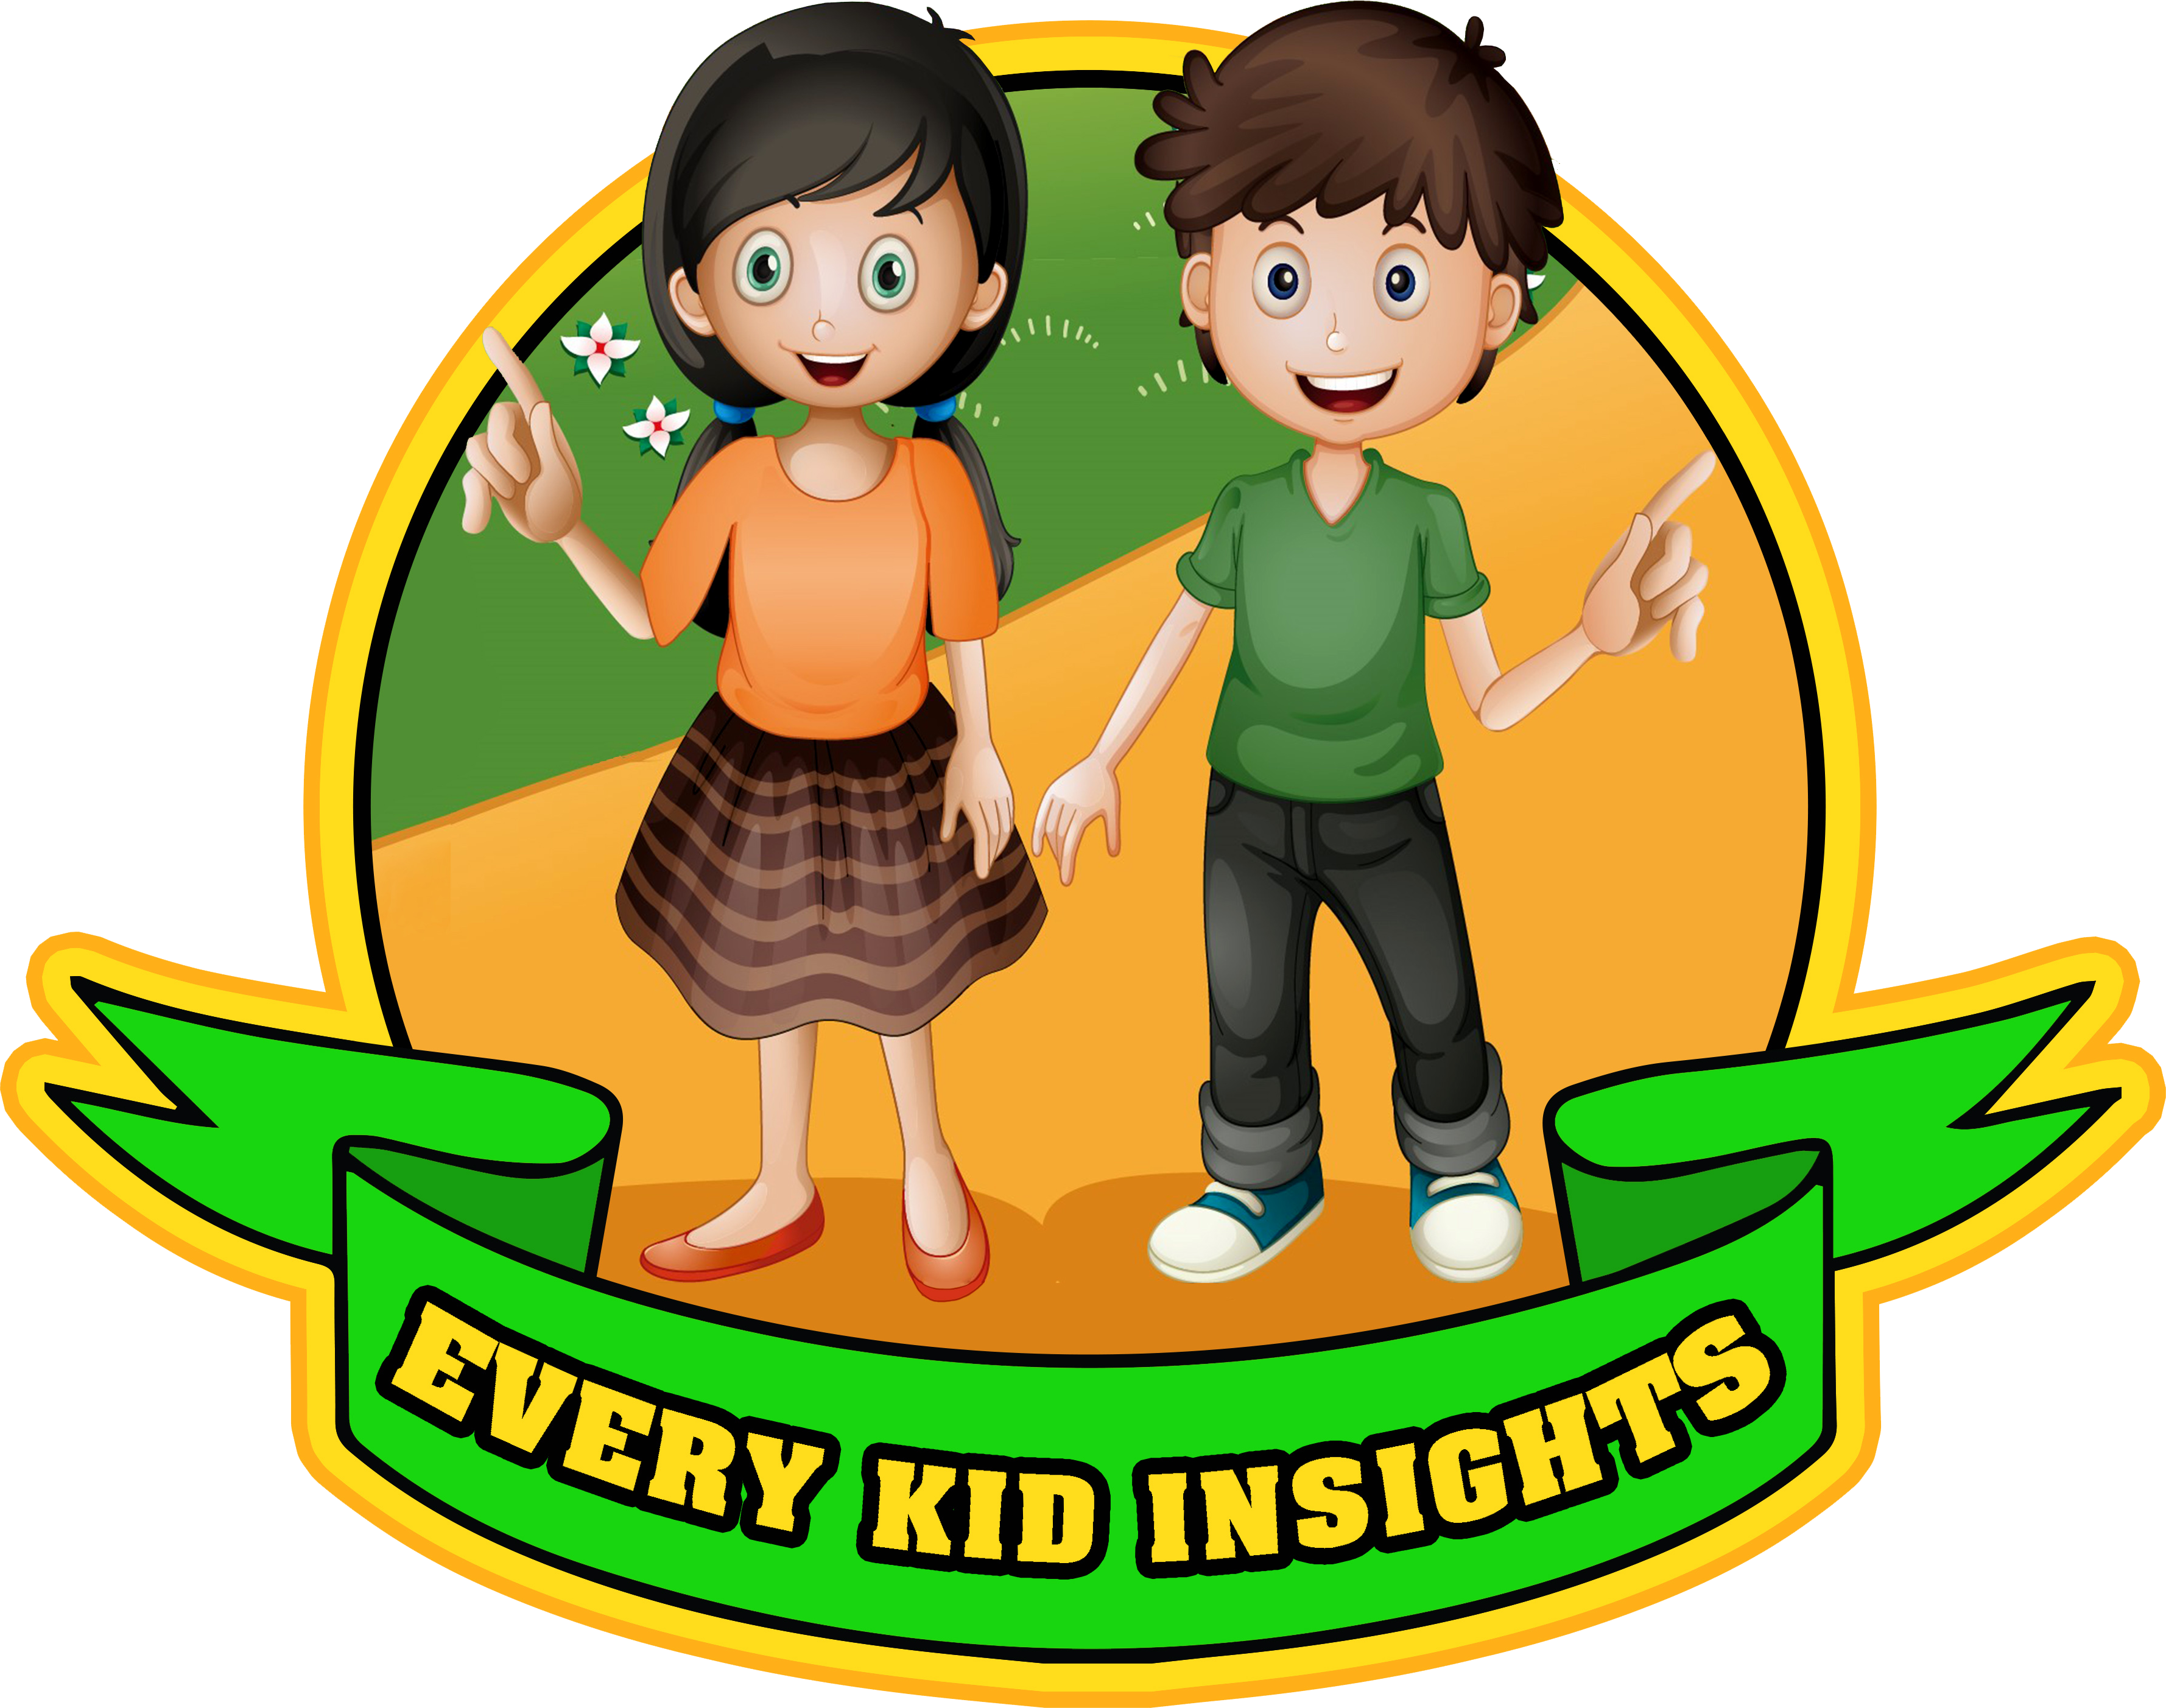 Librarian clipart honest child. How to influence your